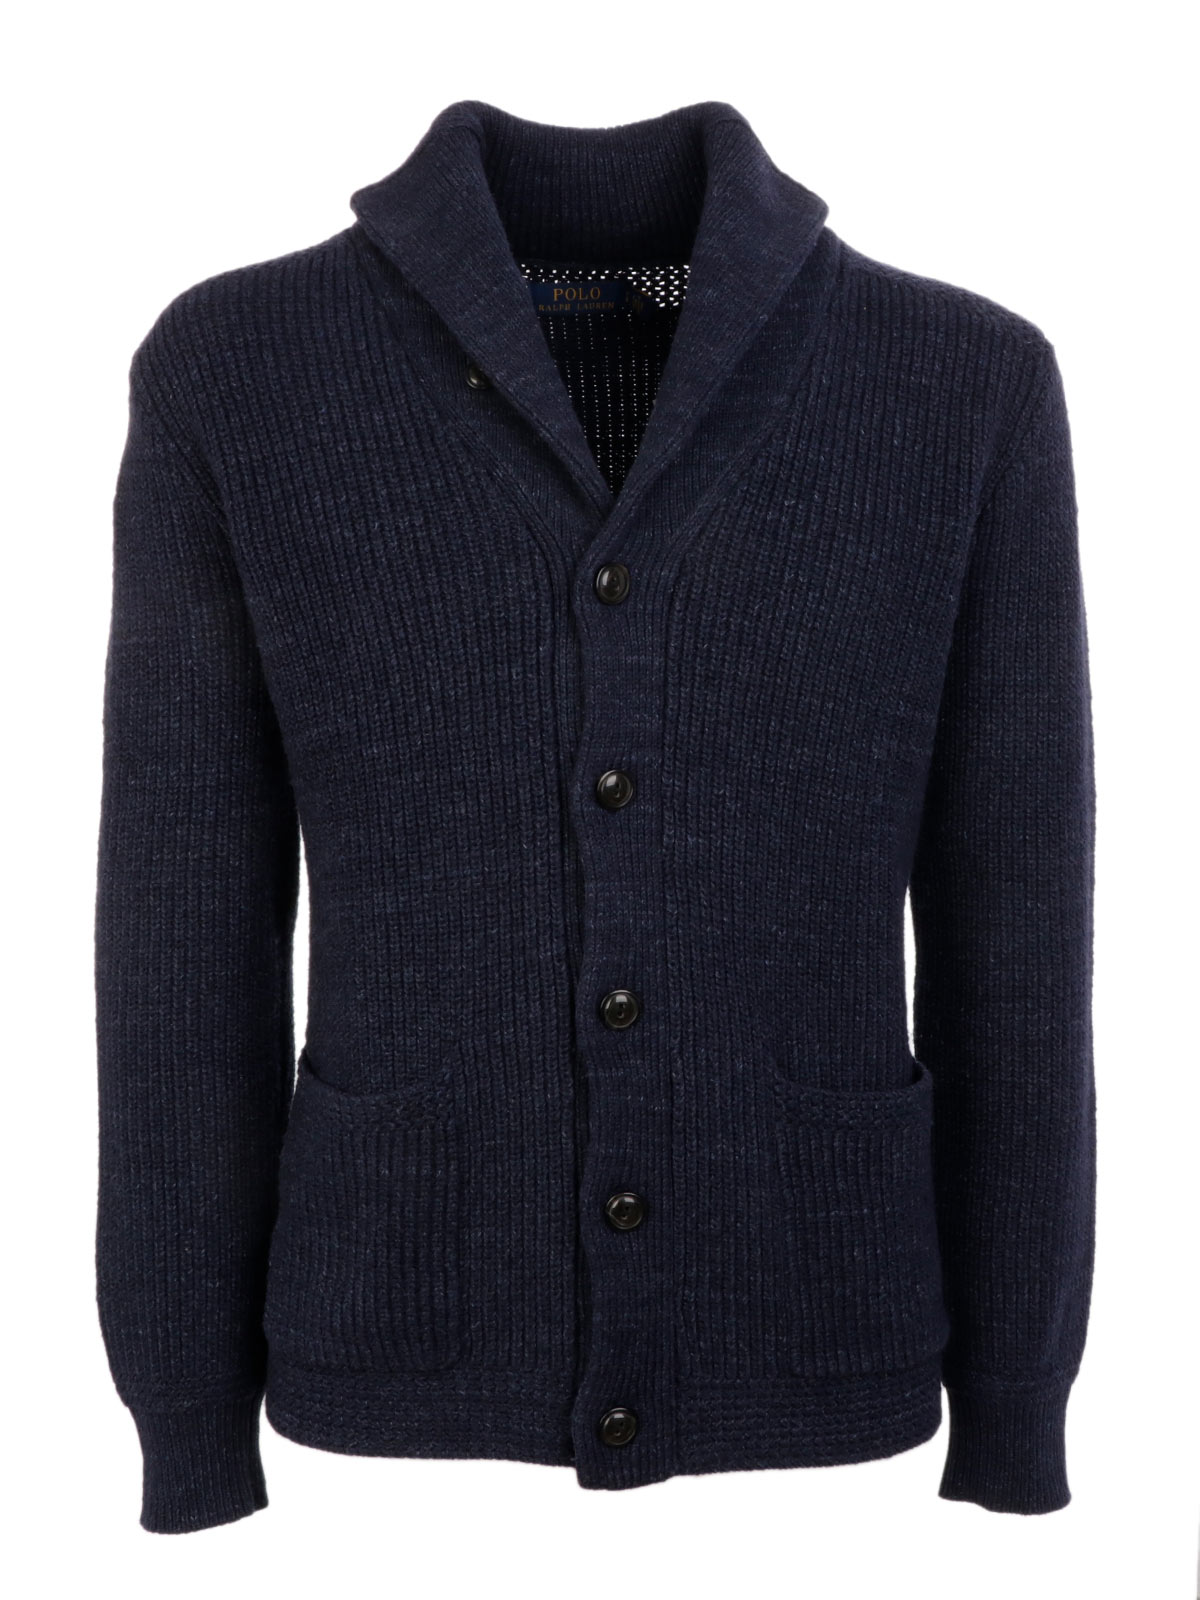 Picture of POLO RALPH LAUREN | Shawl-Collar Cardigan